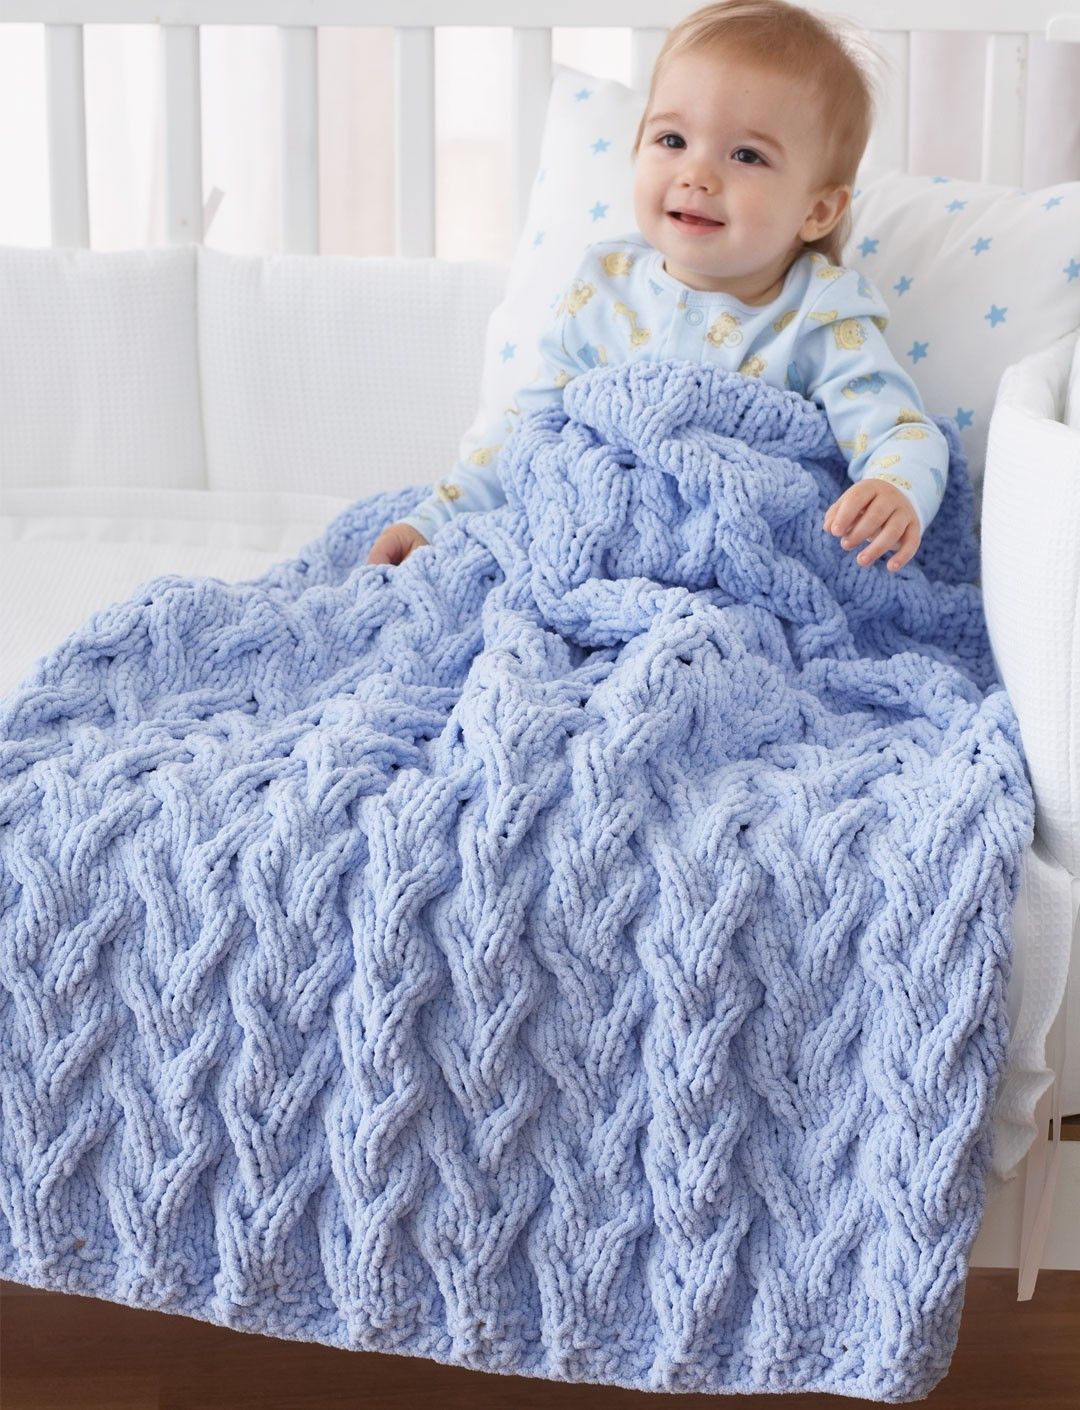 Luxury Bernat Baby Blanket Super Bulky Yarn Crochet Patterns Bernat Chunky Blanket Yarn Of Fresh 50 Ideas Bernat Chunky Blanket Yarn